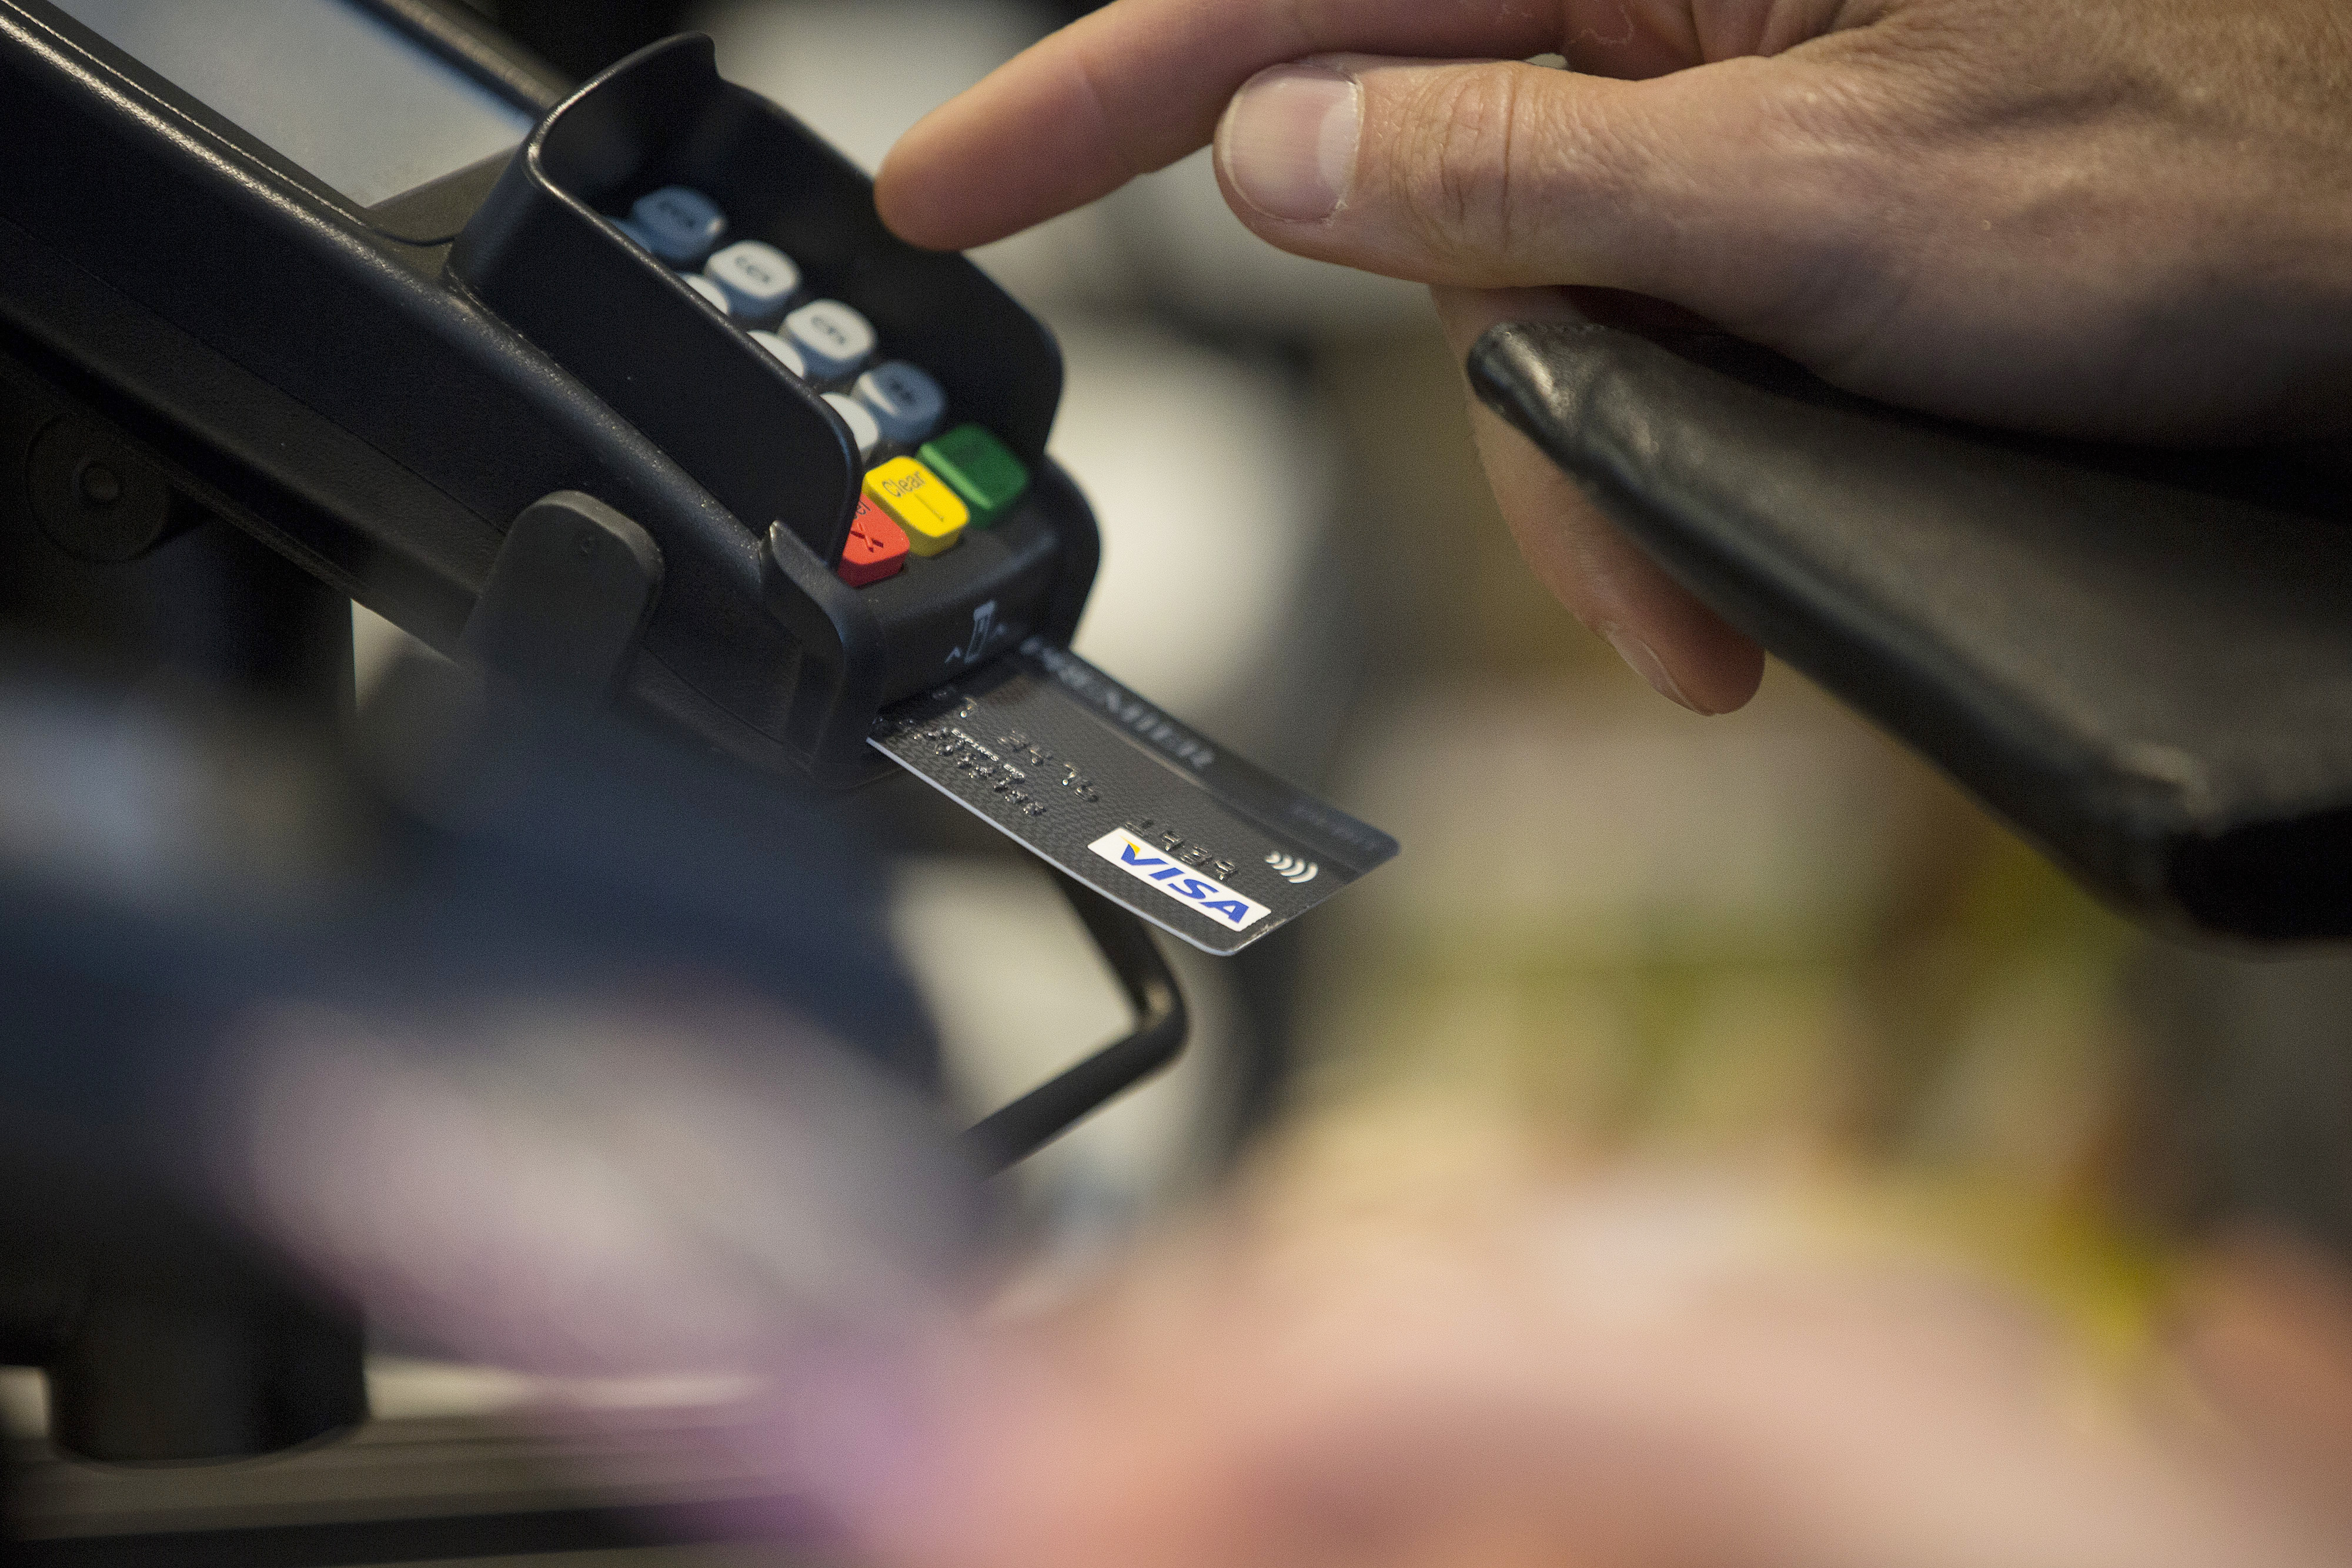 A customer enters their pin number while making a chip and pin payment using a Visa Inc. payment card.